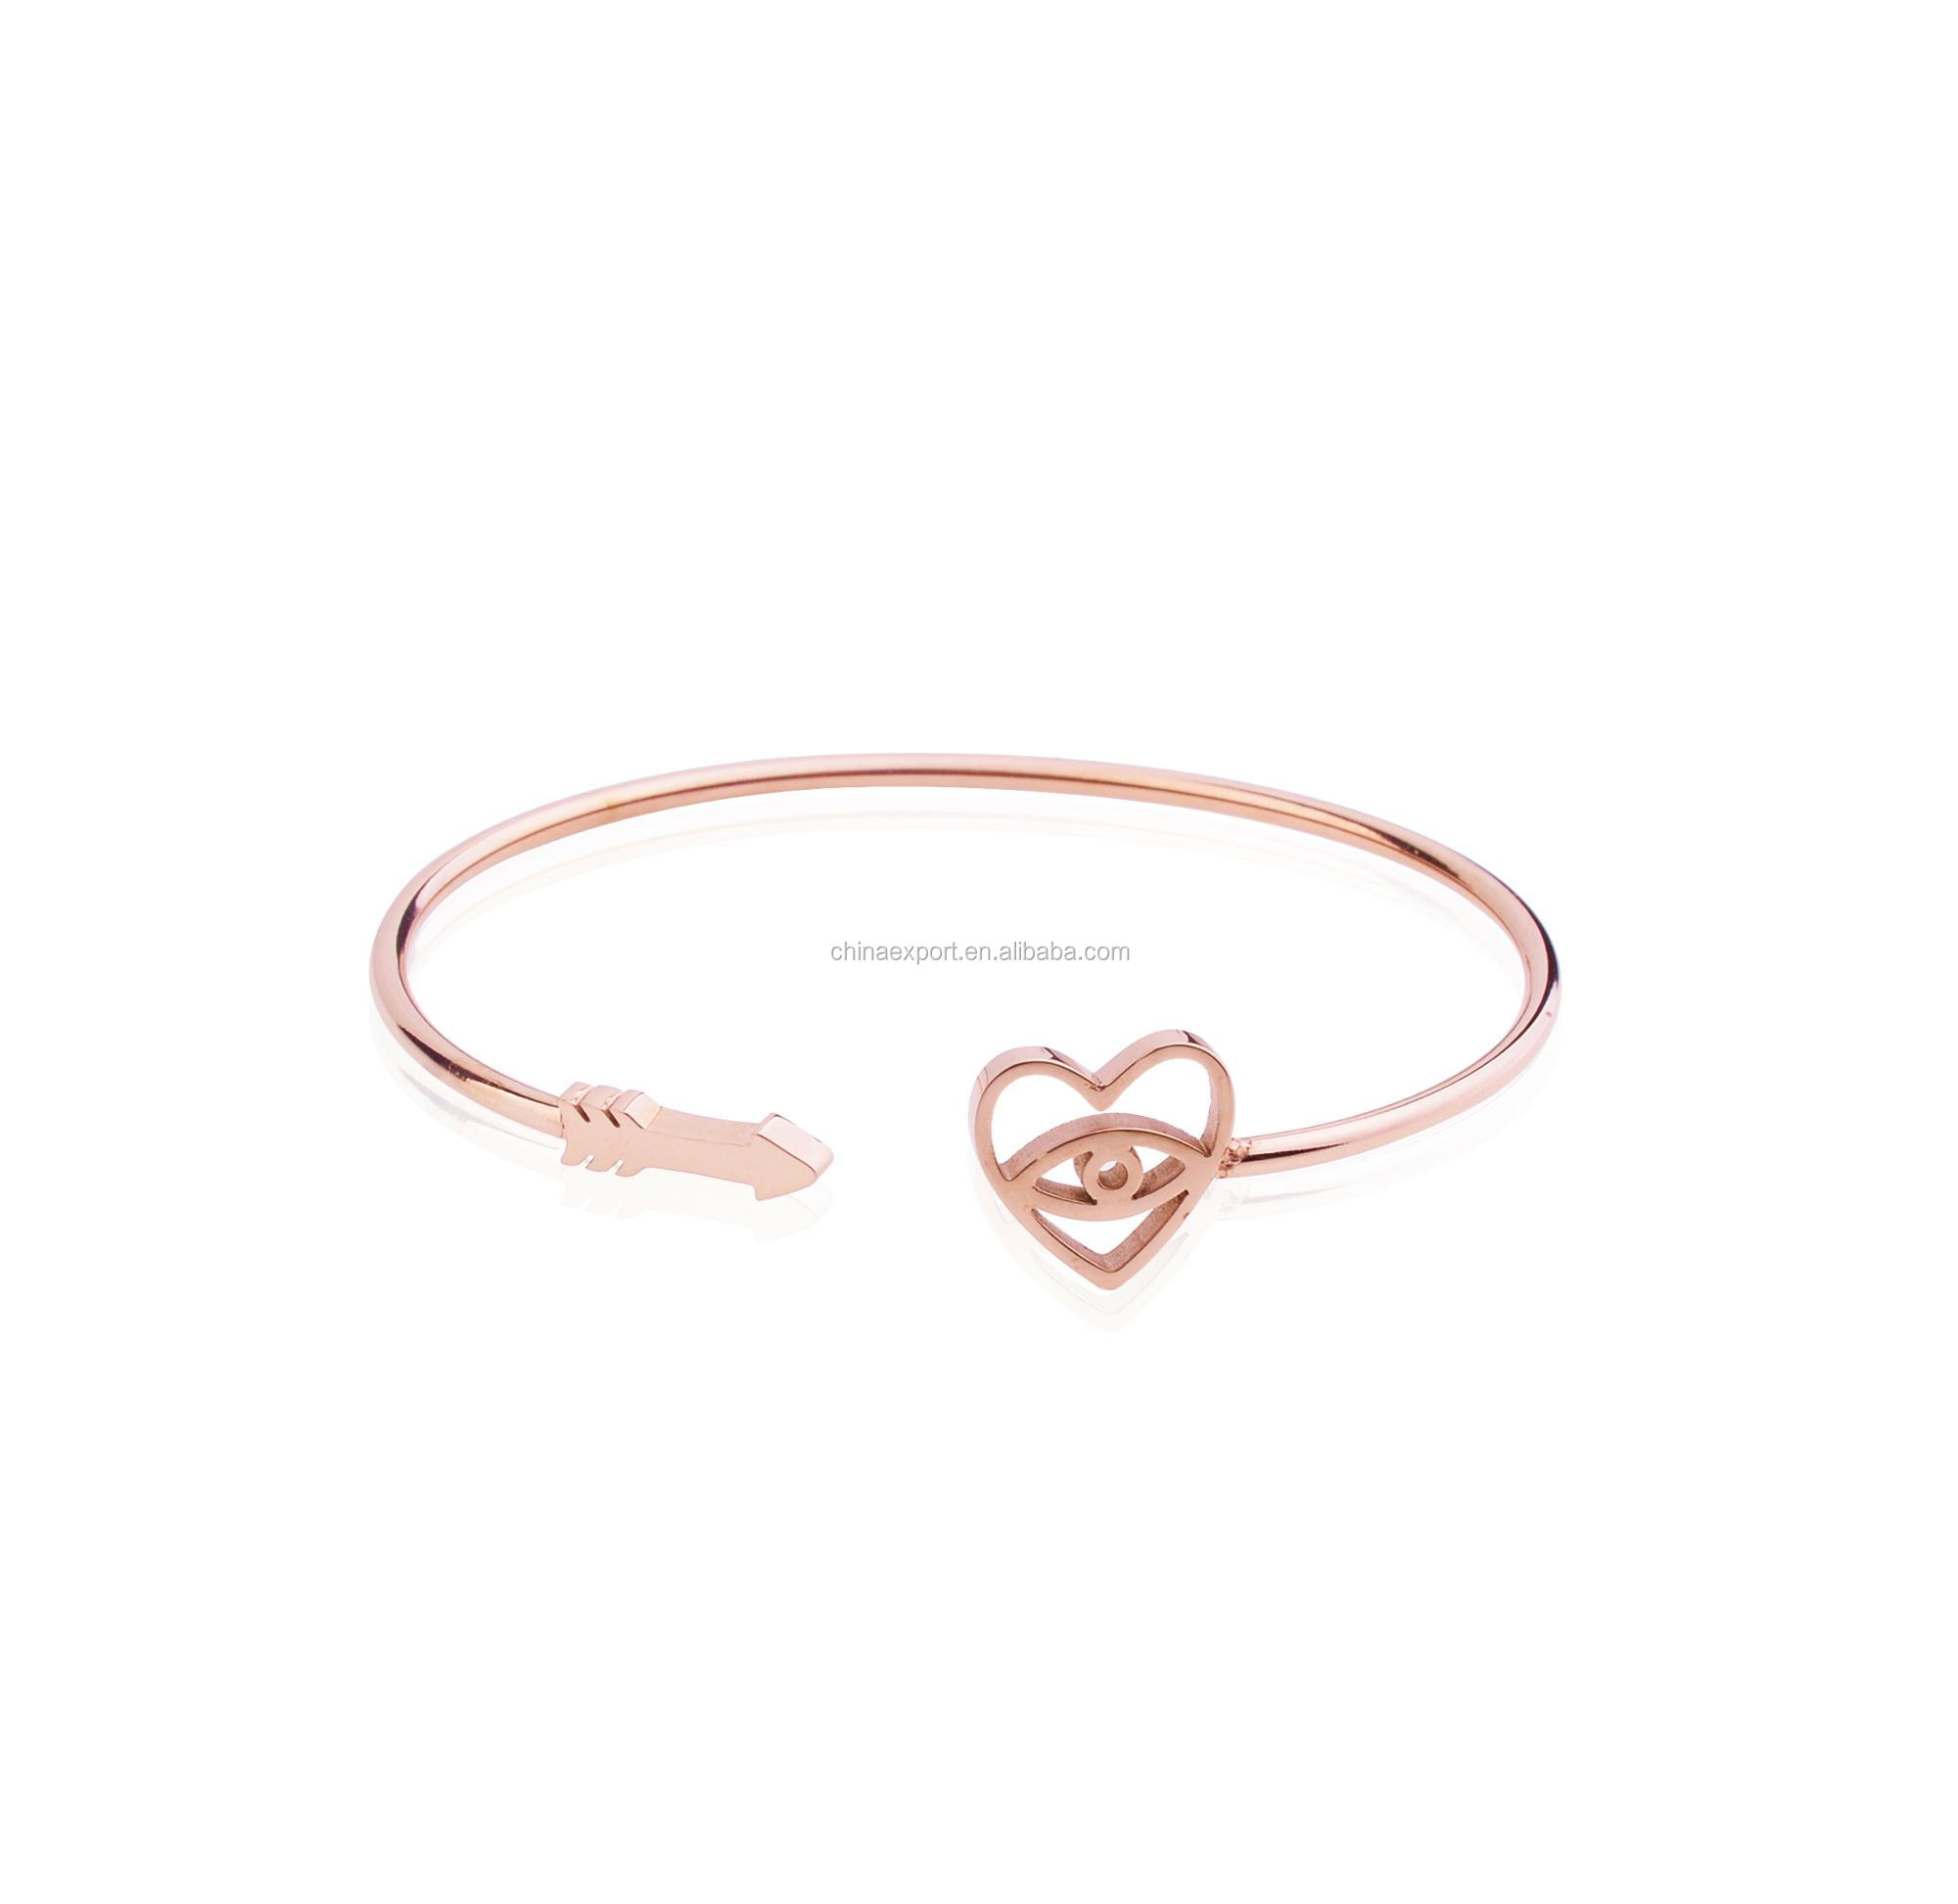 Stainless steel rose gold I am sexy cuff bracelets